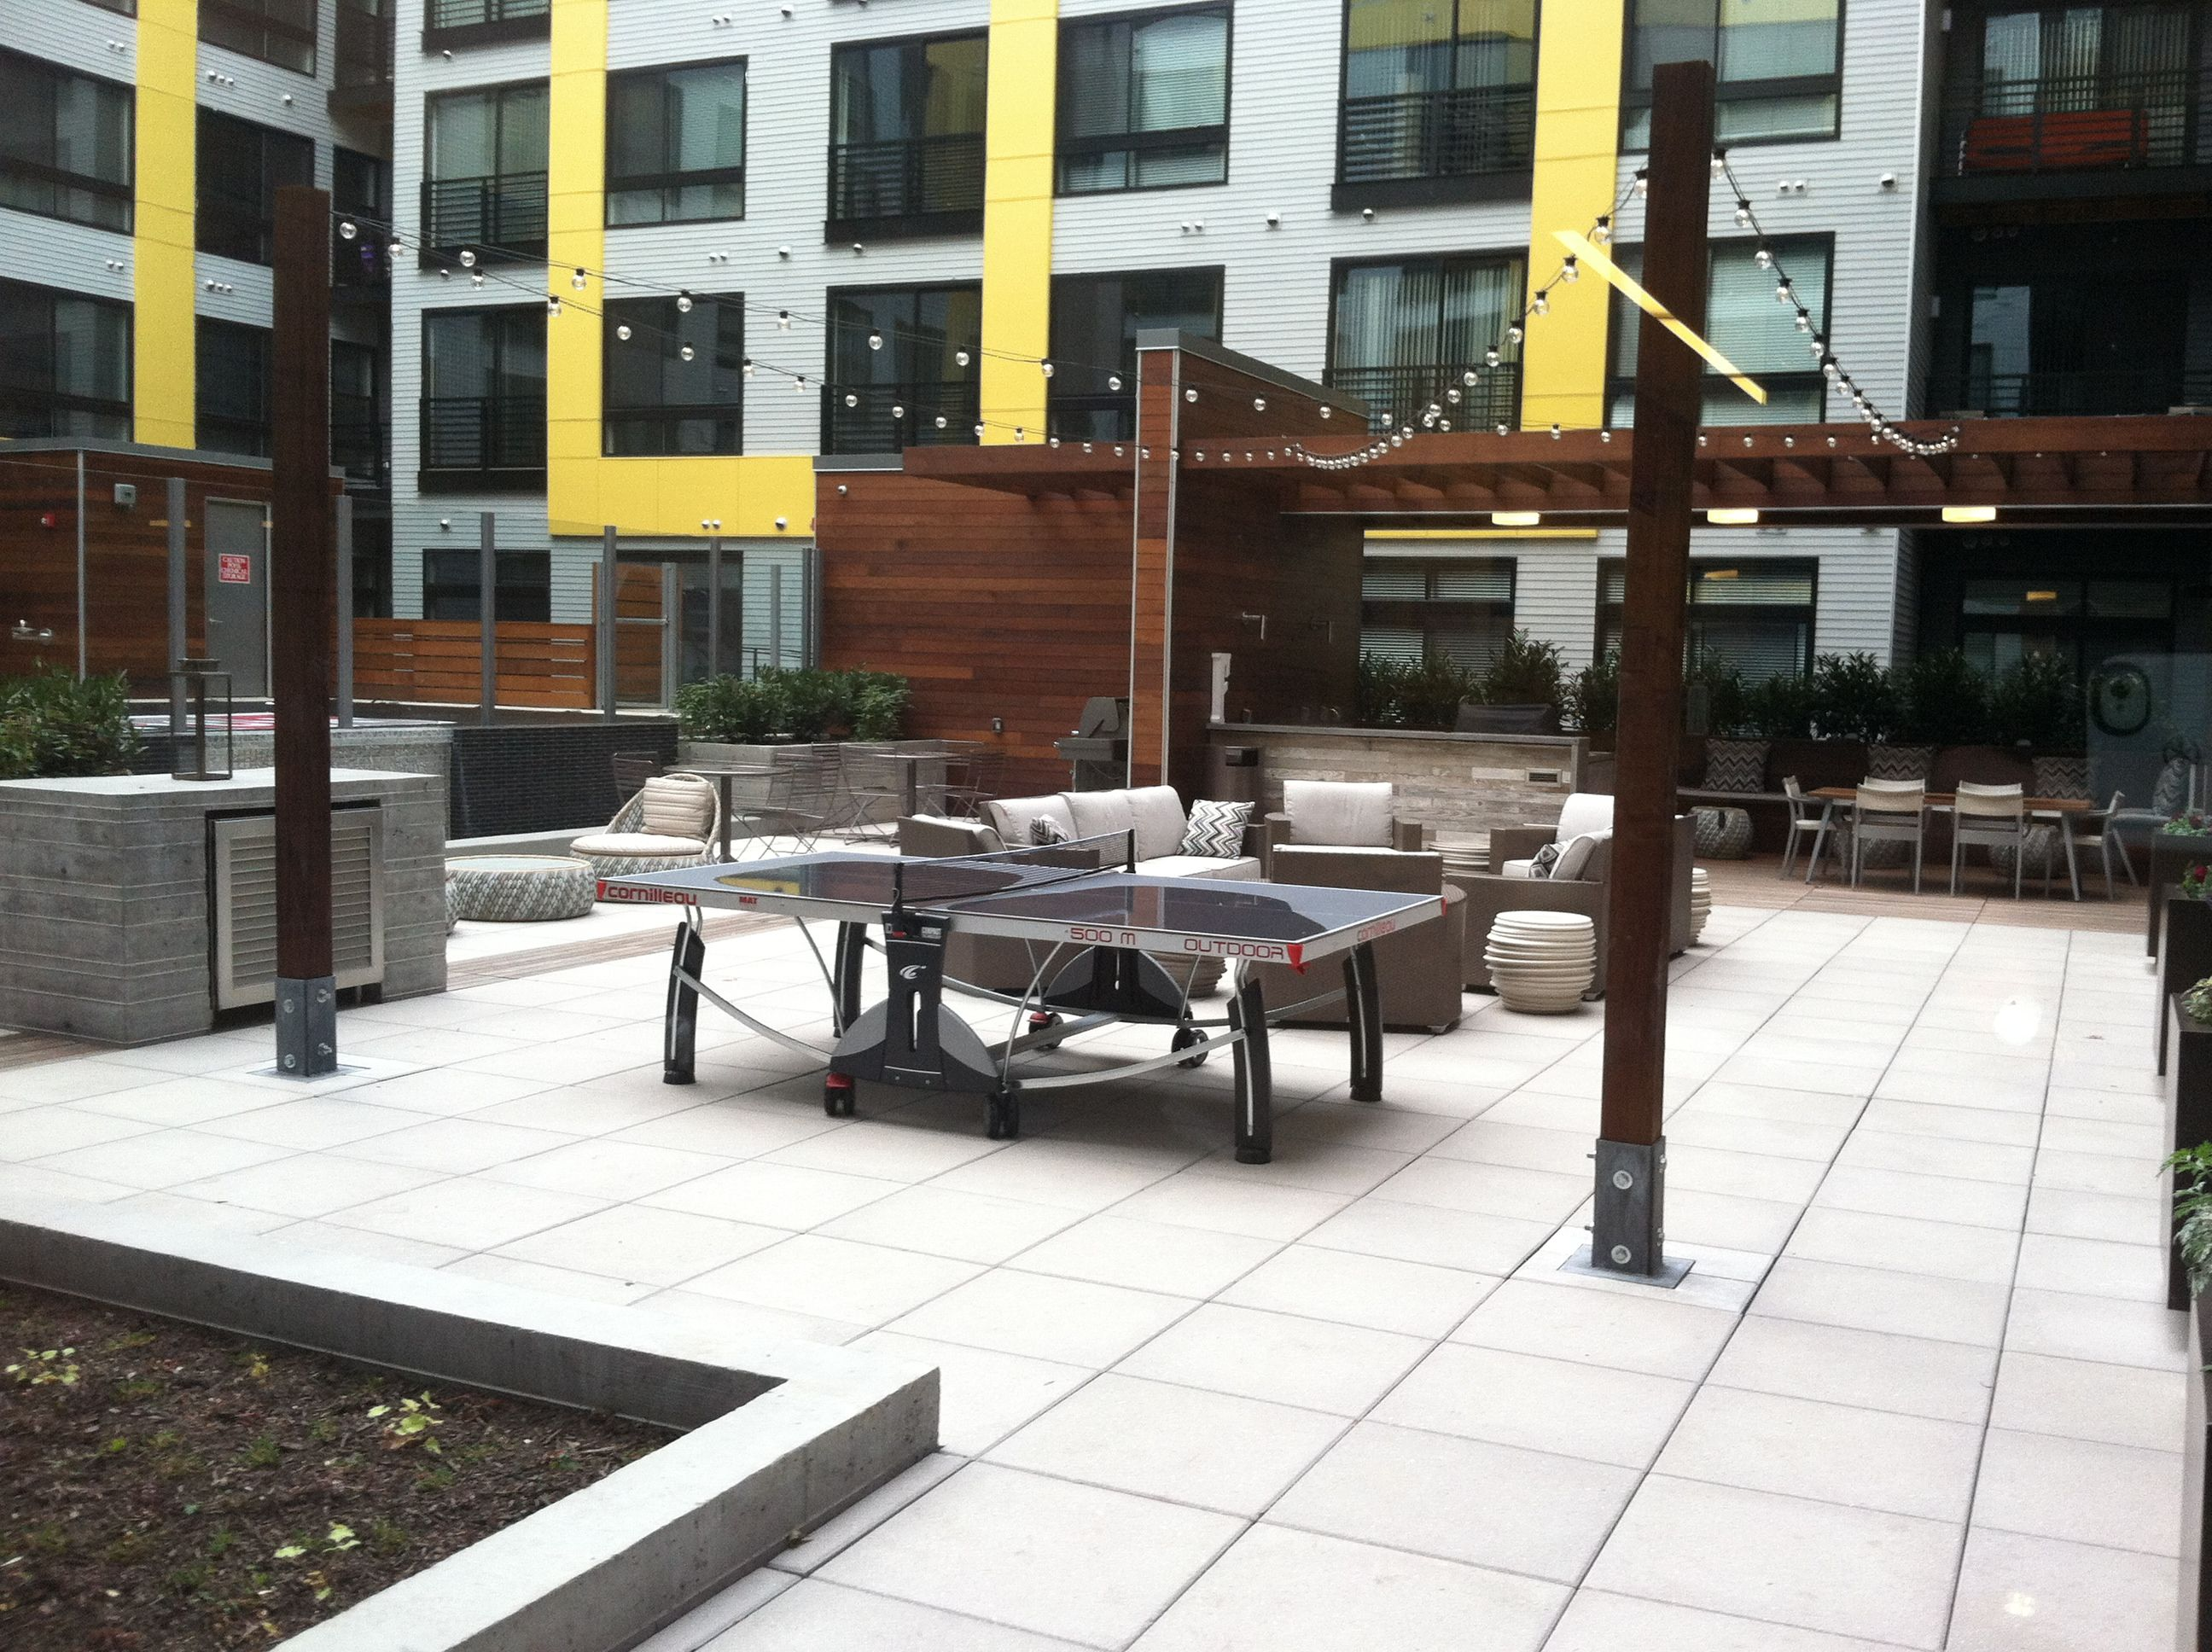 Fenwick Install Urban Courtyards Multifamily Housing Architecture